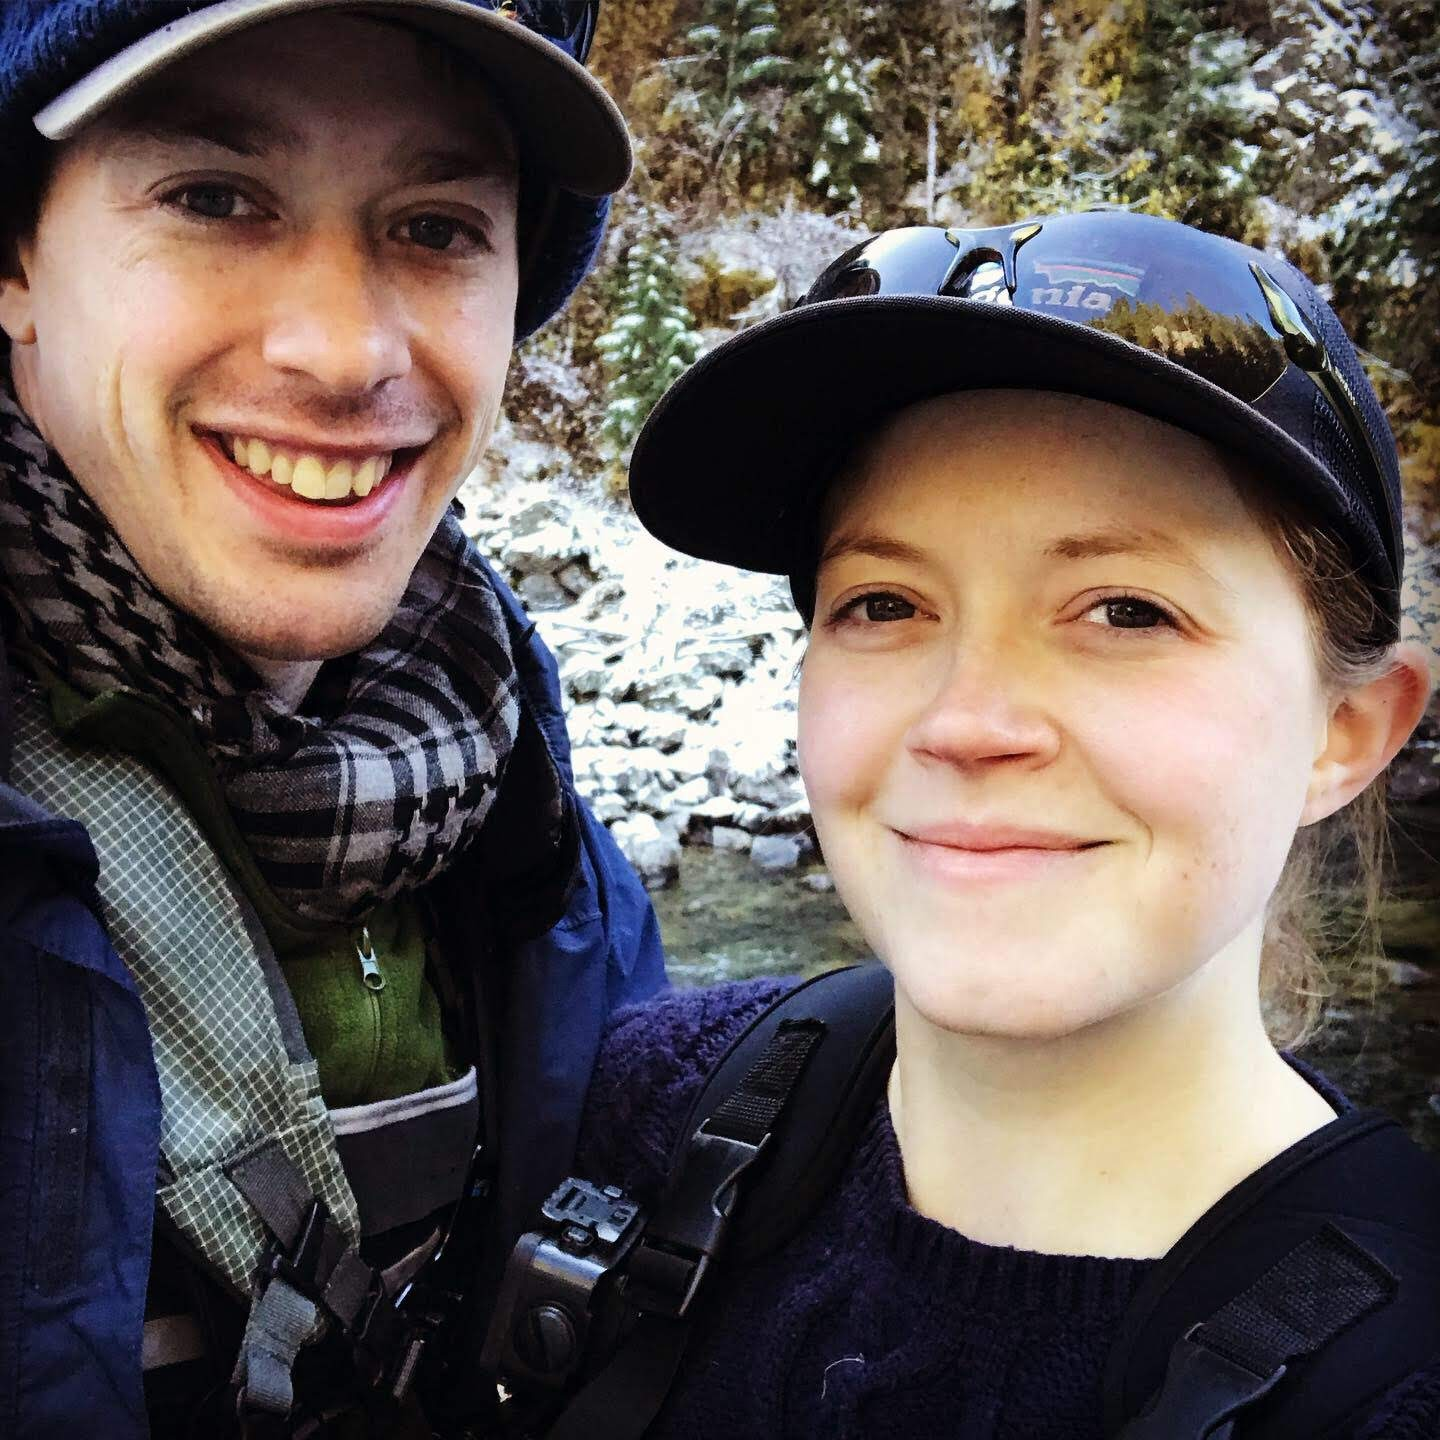 Picture of two people outdoors